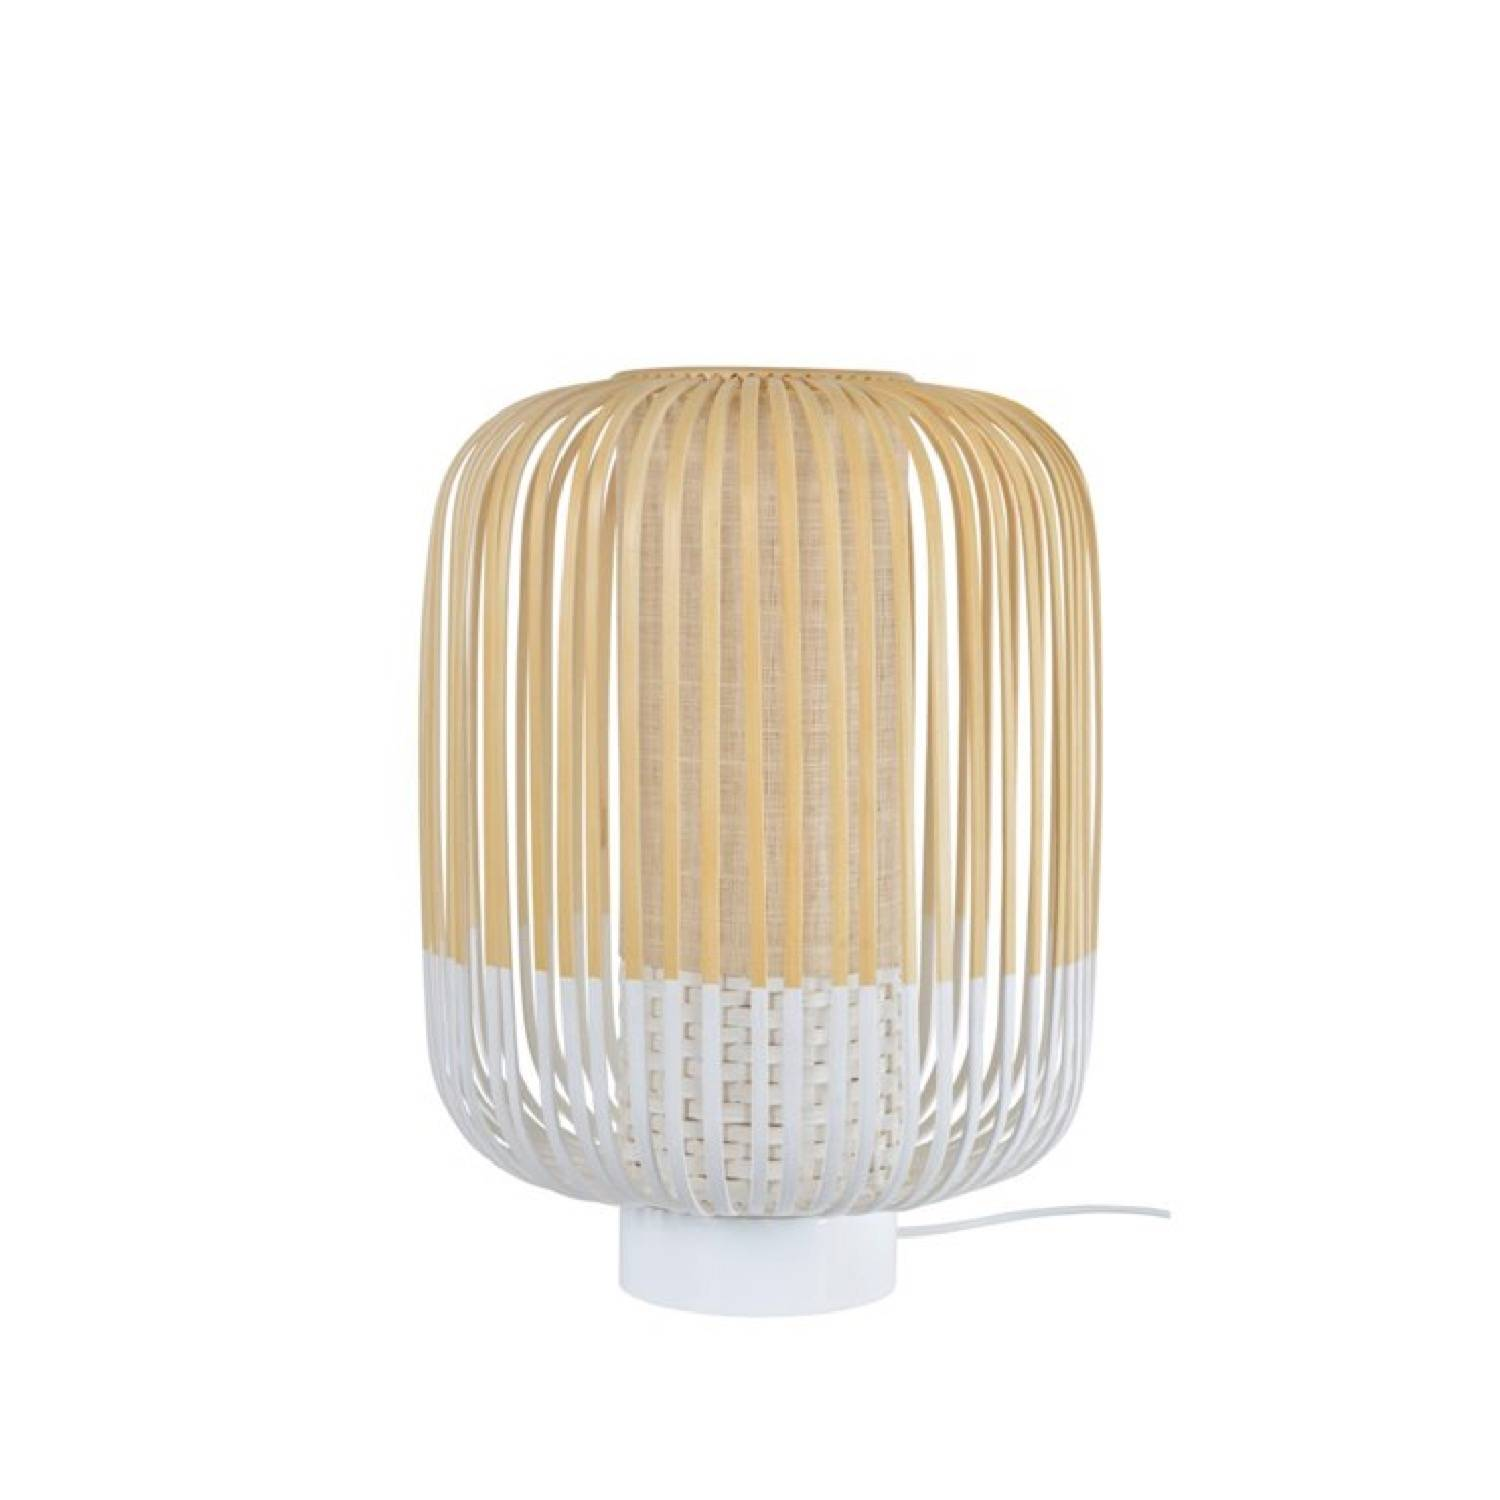 Forestier Lampe  poser bambou blanc H39cm